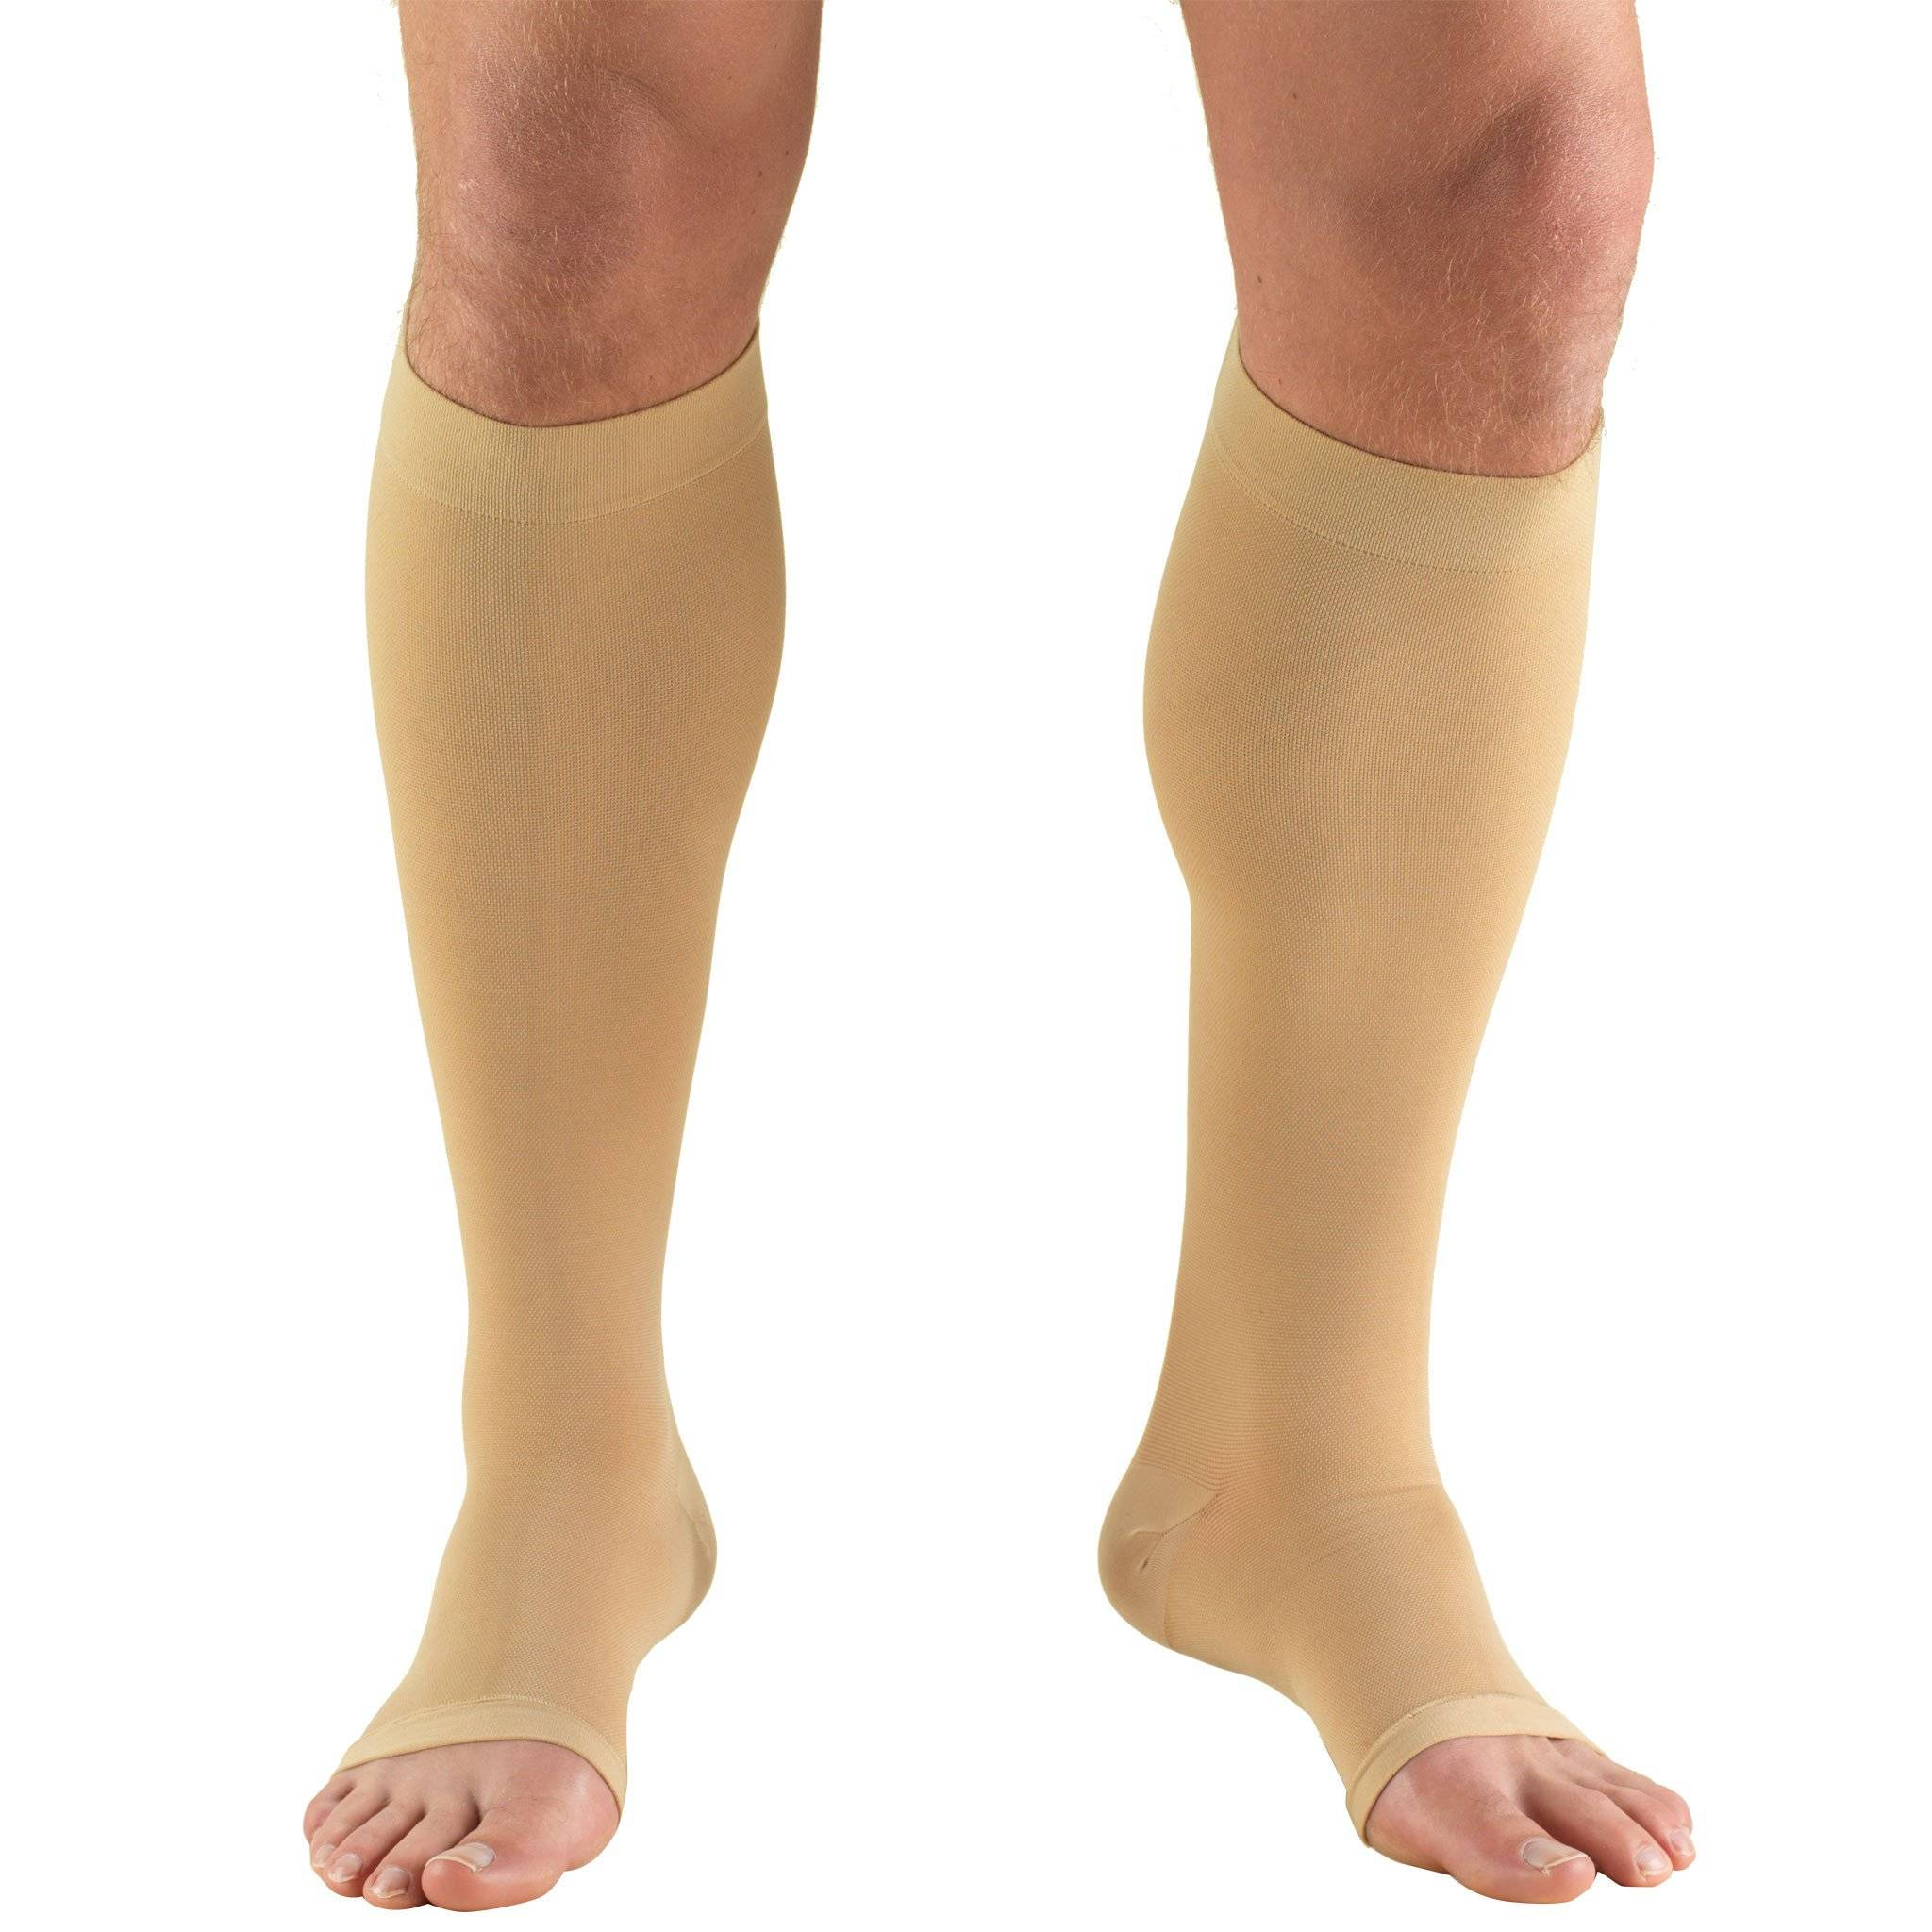 Knee High Open Toe Medical Stockings